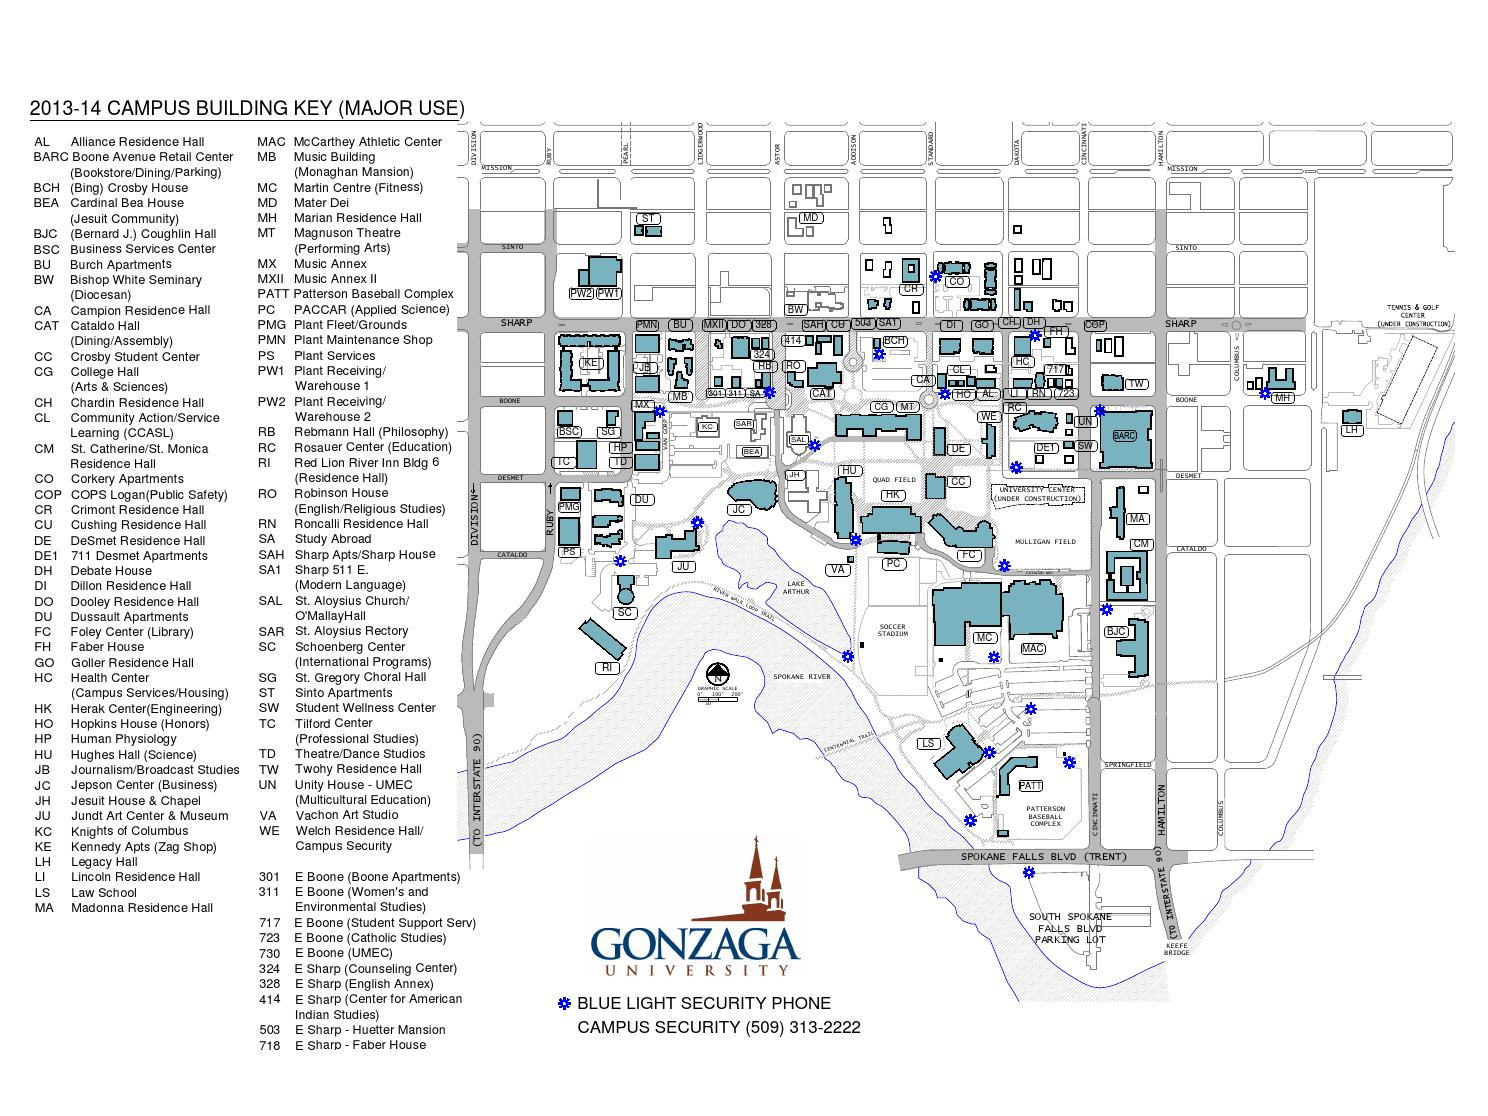 Gonzaga University Campus Map by Gonzaga University - issuu on